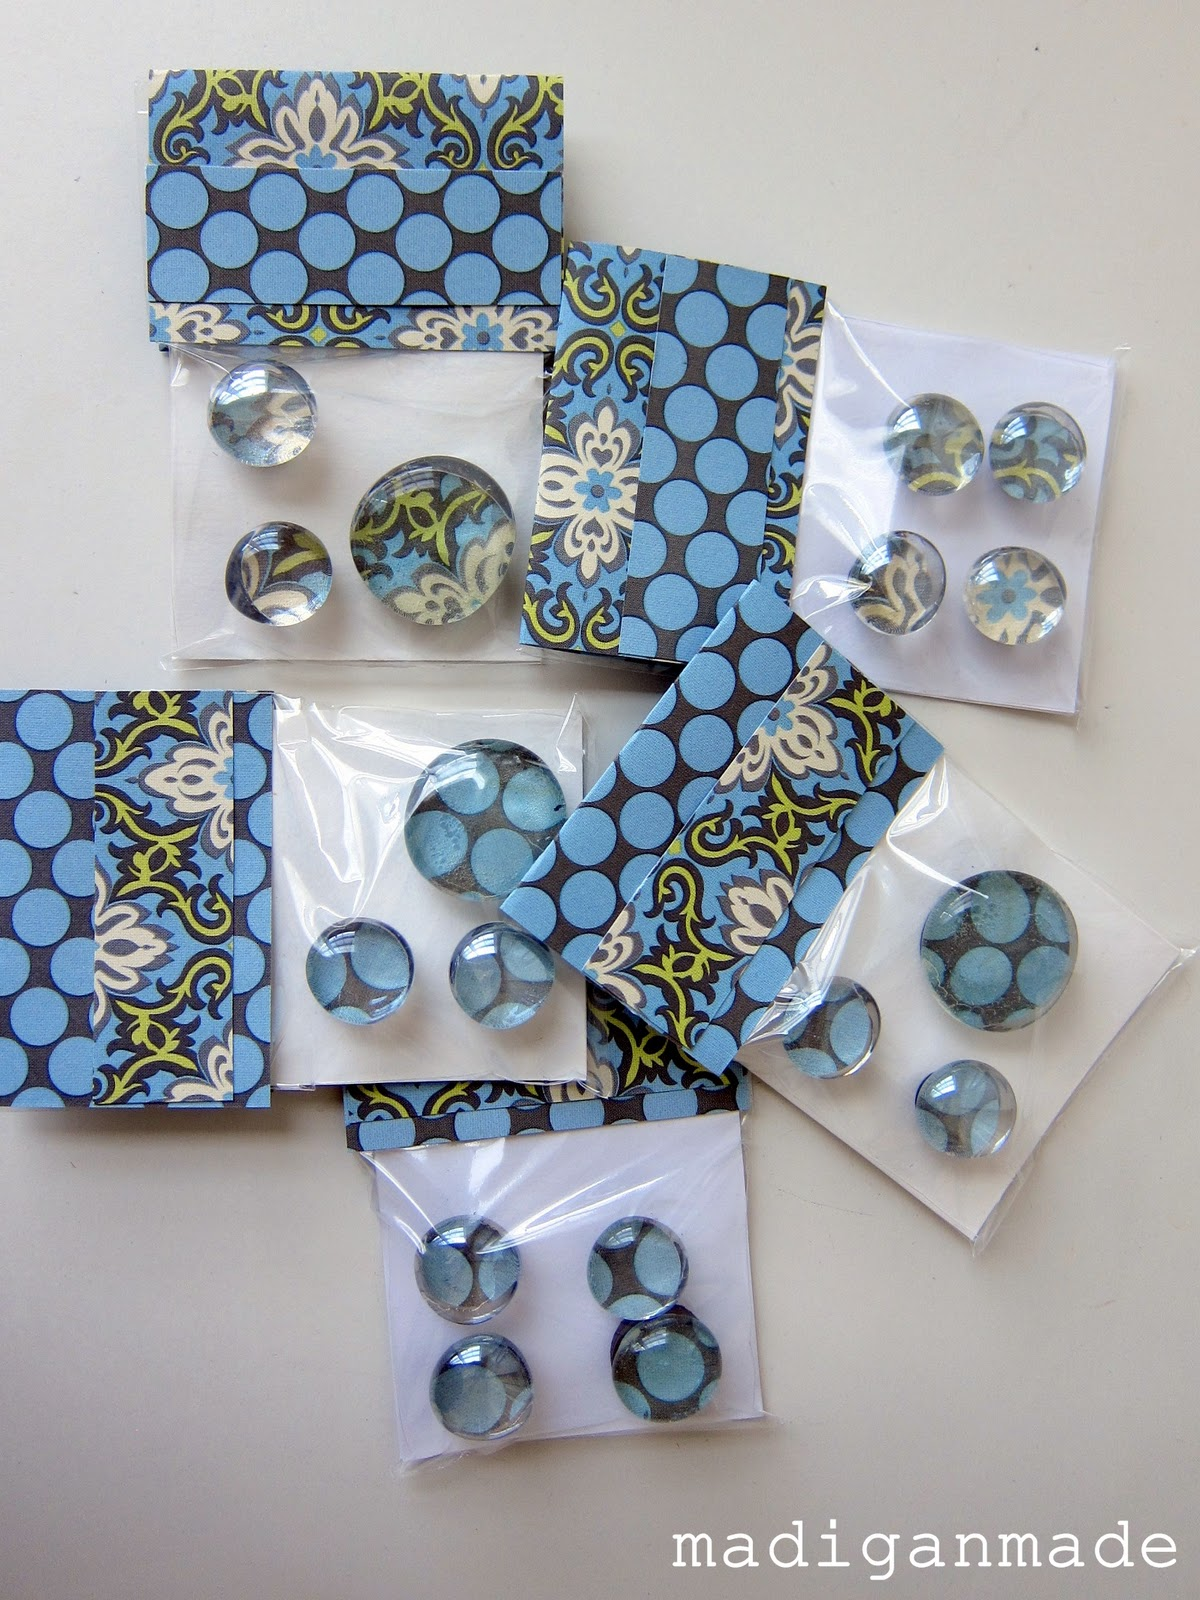 Make a quick gift: Glass gem magnets